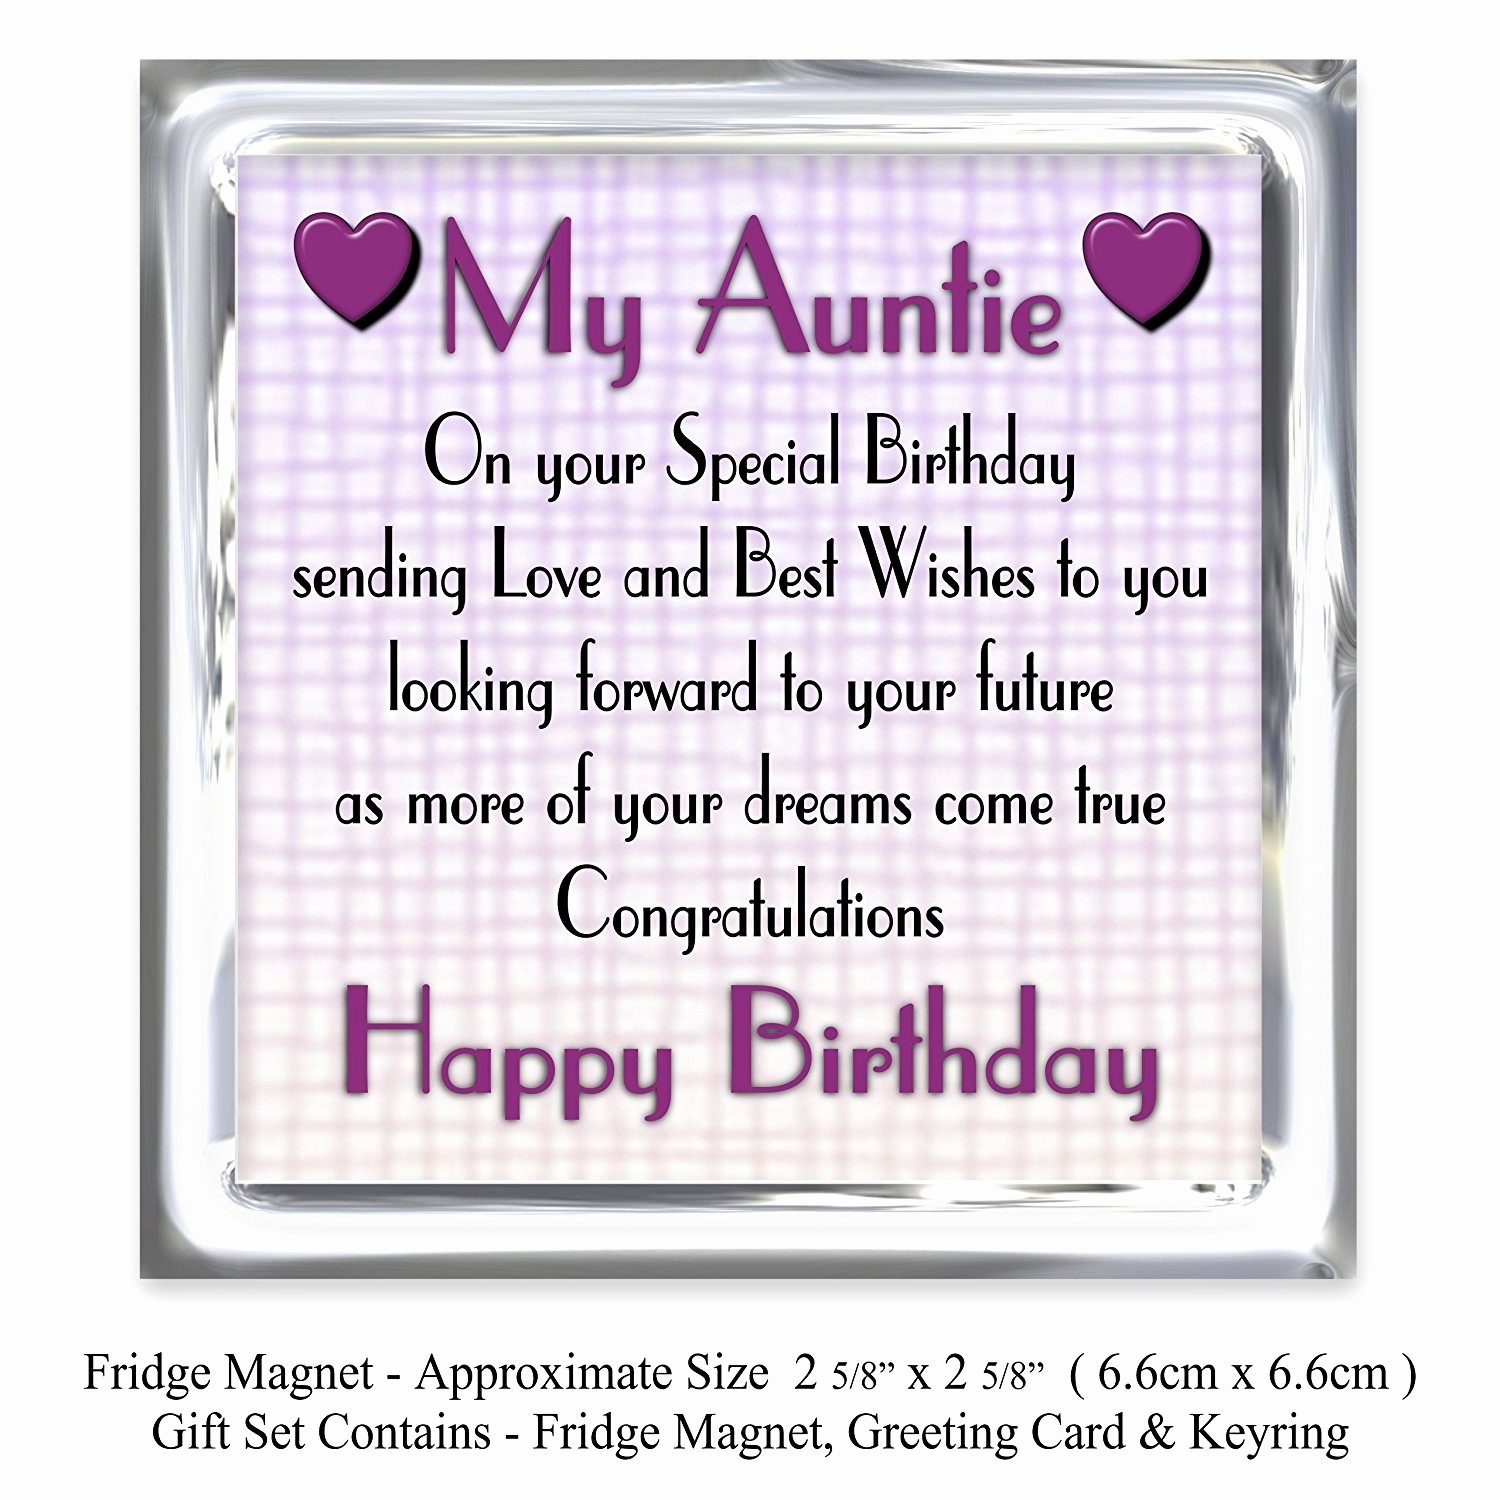 birthday cards for aunt printable ; aunt-birthday-cards-new-auntie-70th-happy-birthday-gift-set-card-keyring-amp-fridge-of-aunt-birthday-cards